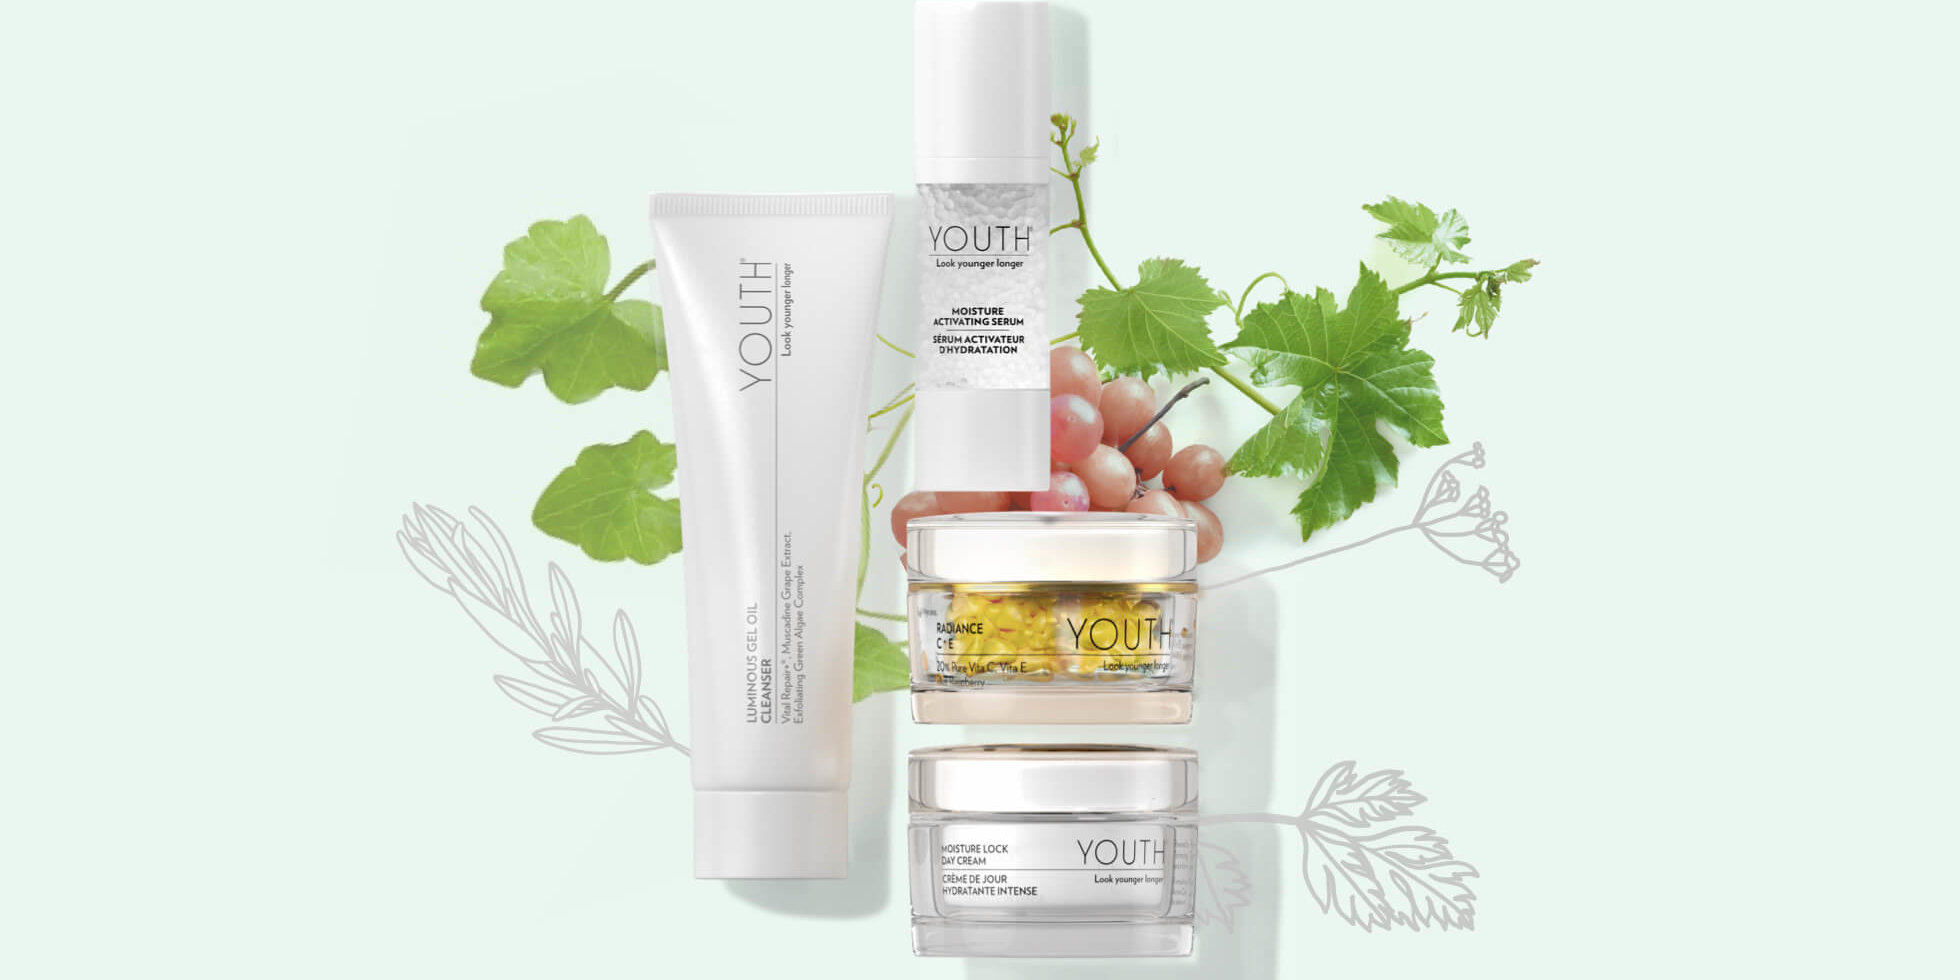 Shaklee Youth Skincare products